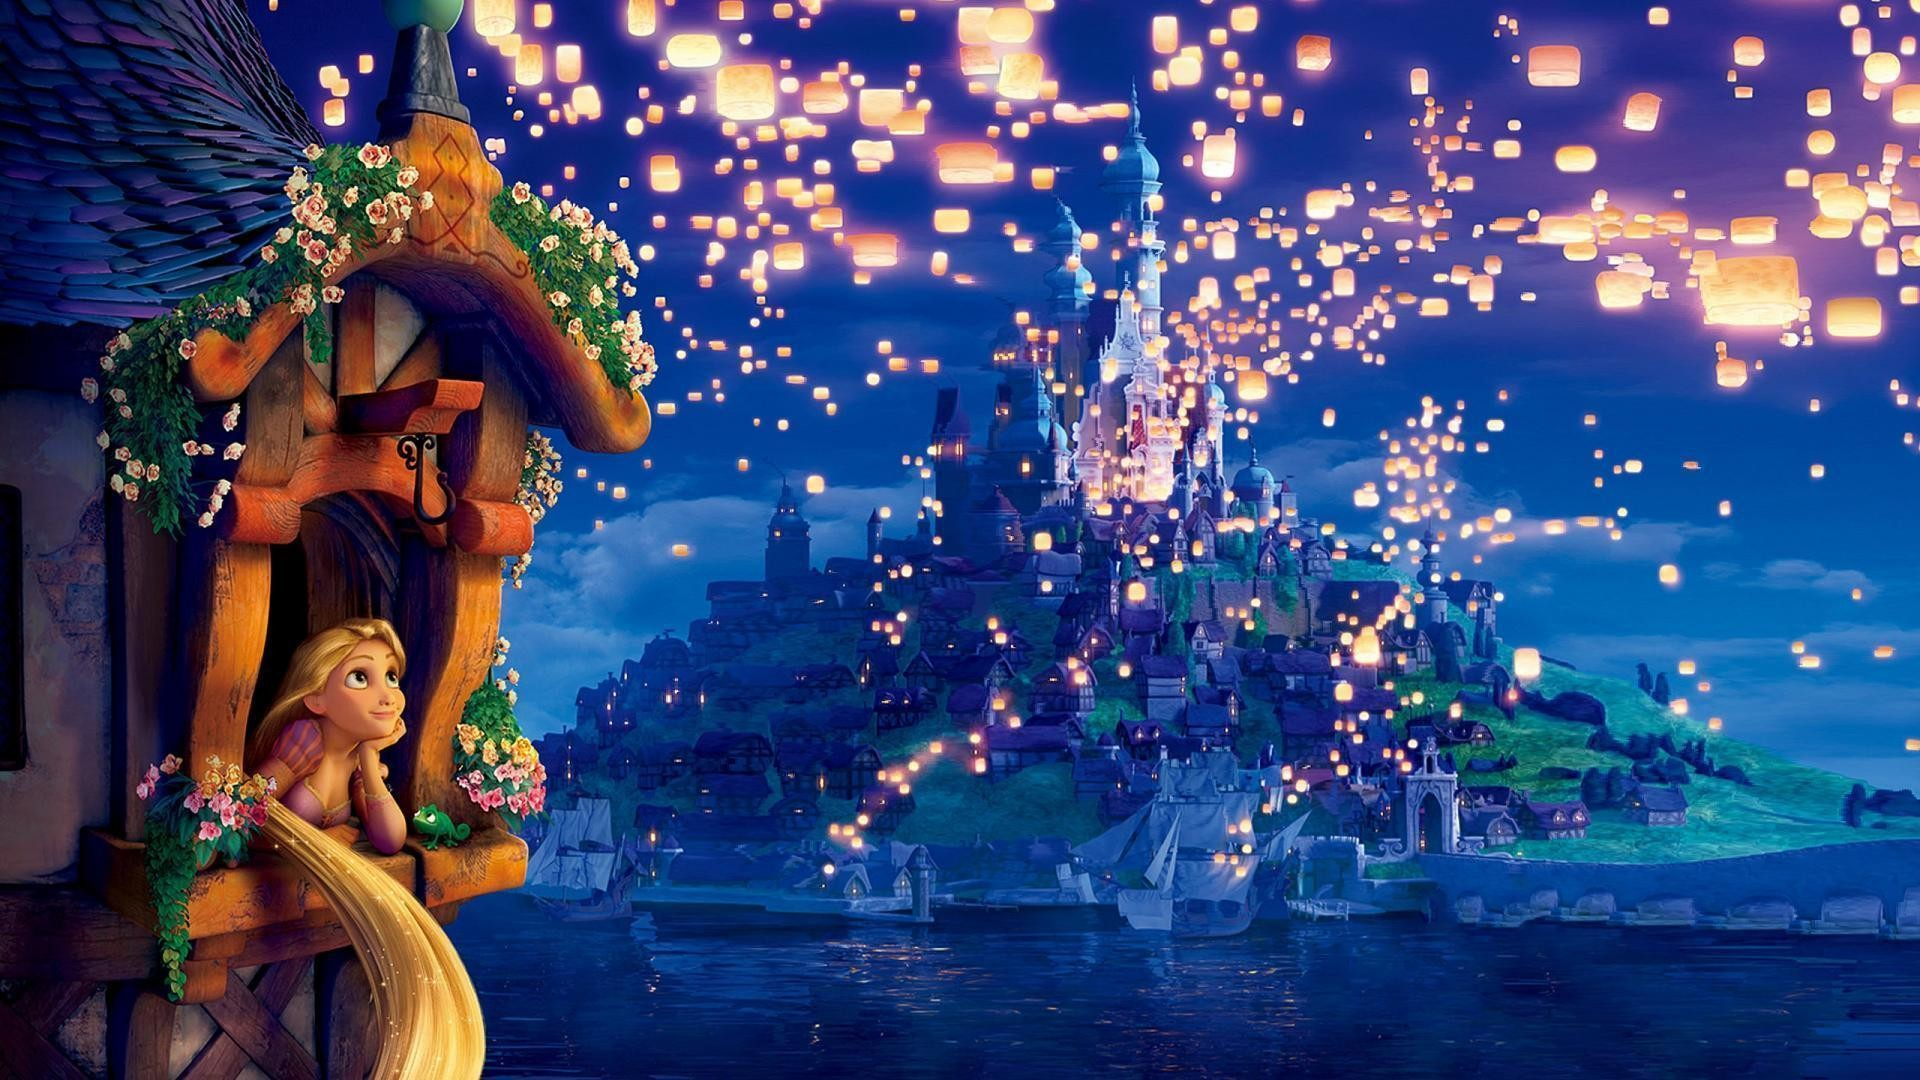 67 Tangled Wallpapers on WallpaperPlay 1920x1080